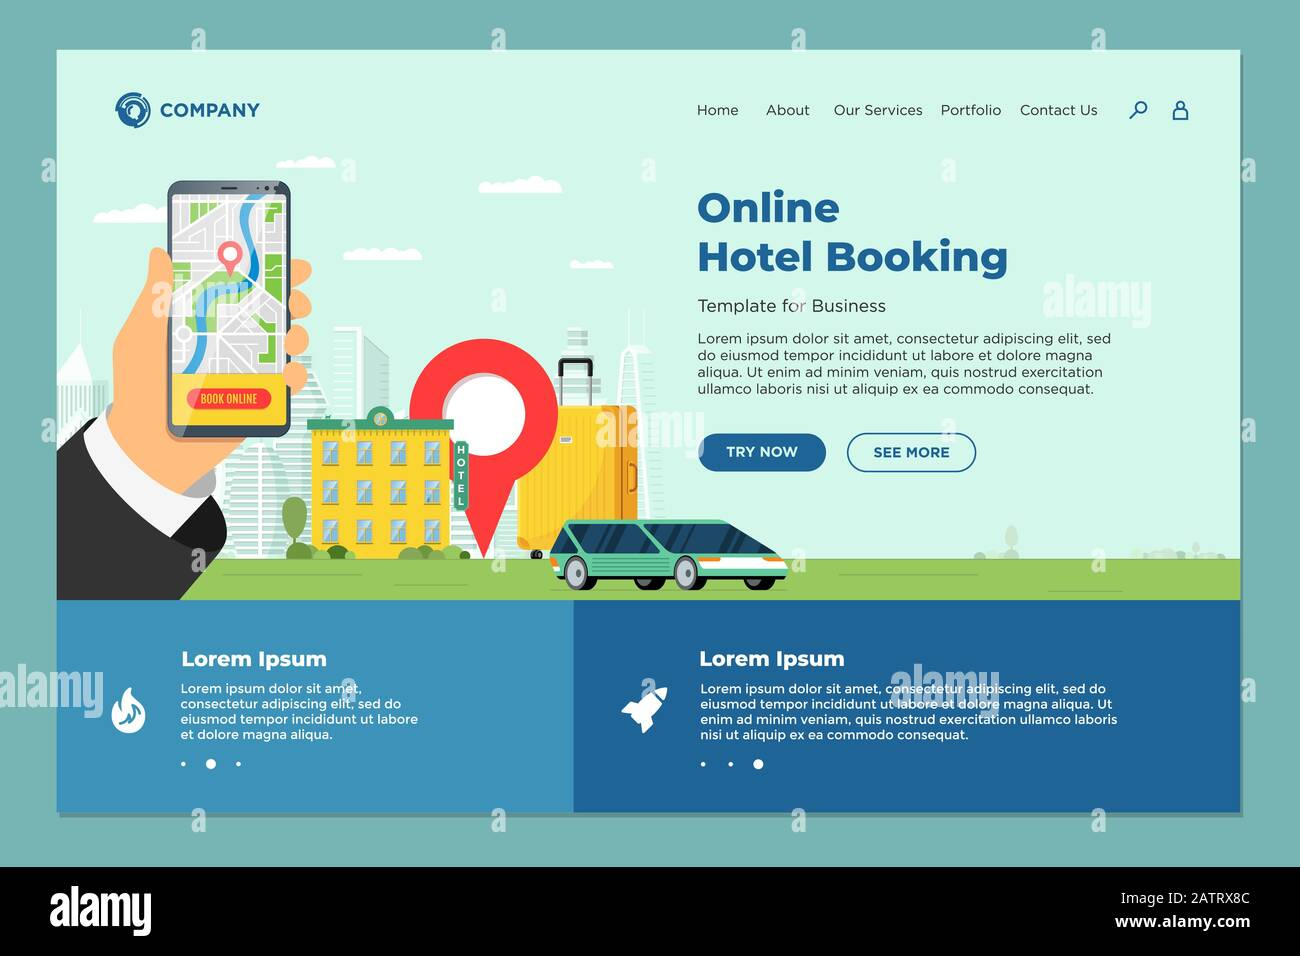 Hotel Online Booking Service For Vacation Tourism Landing Page Template Travel Apartment Transport Reservation Web Design Motel Suitcase And Locatio Stock Vector Image Art Alamy